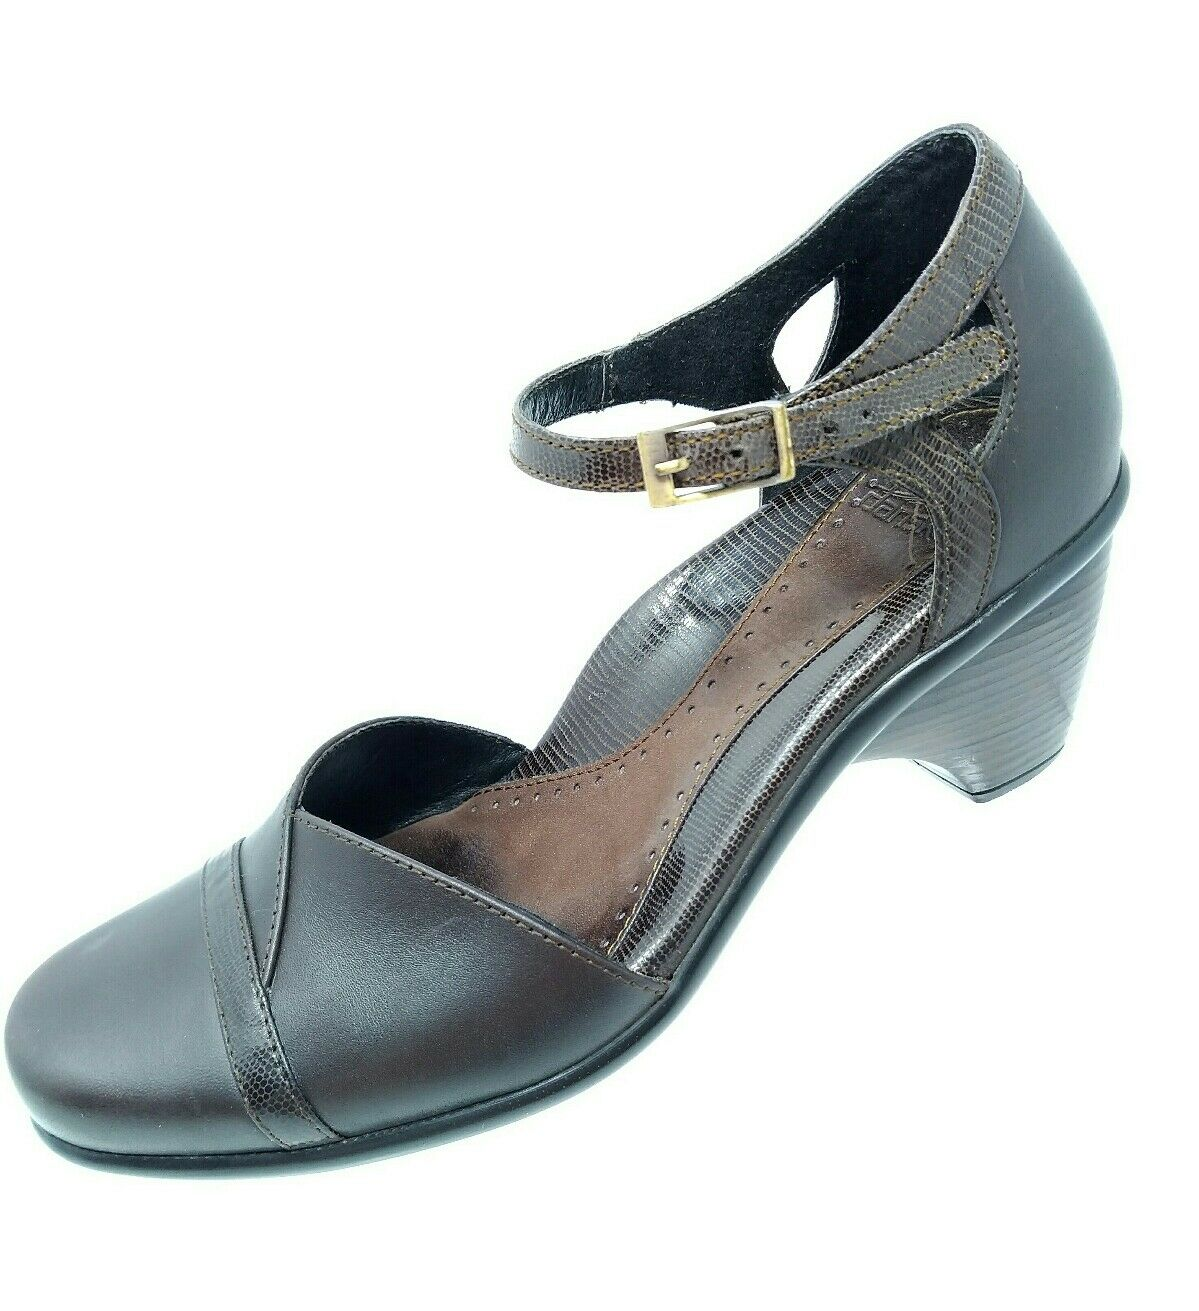 Dansko Womens Heels Size 37 Brown Leather Ankle Strap Block Loafers Shoes Career